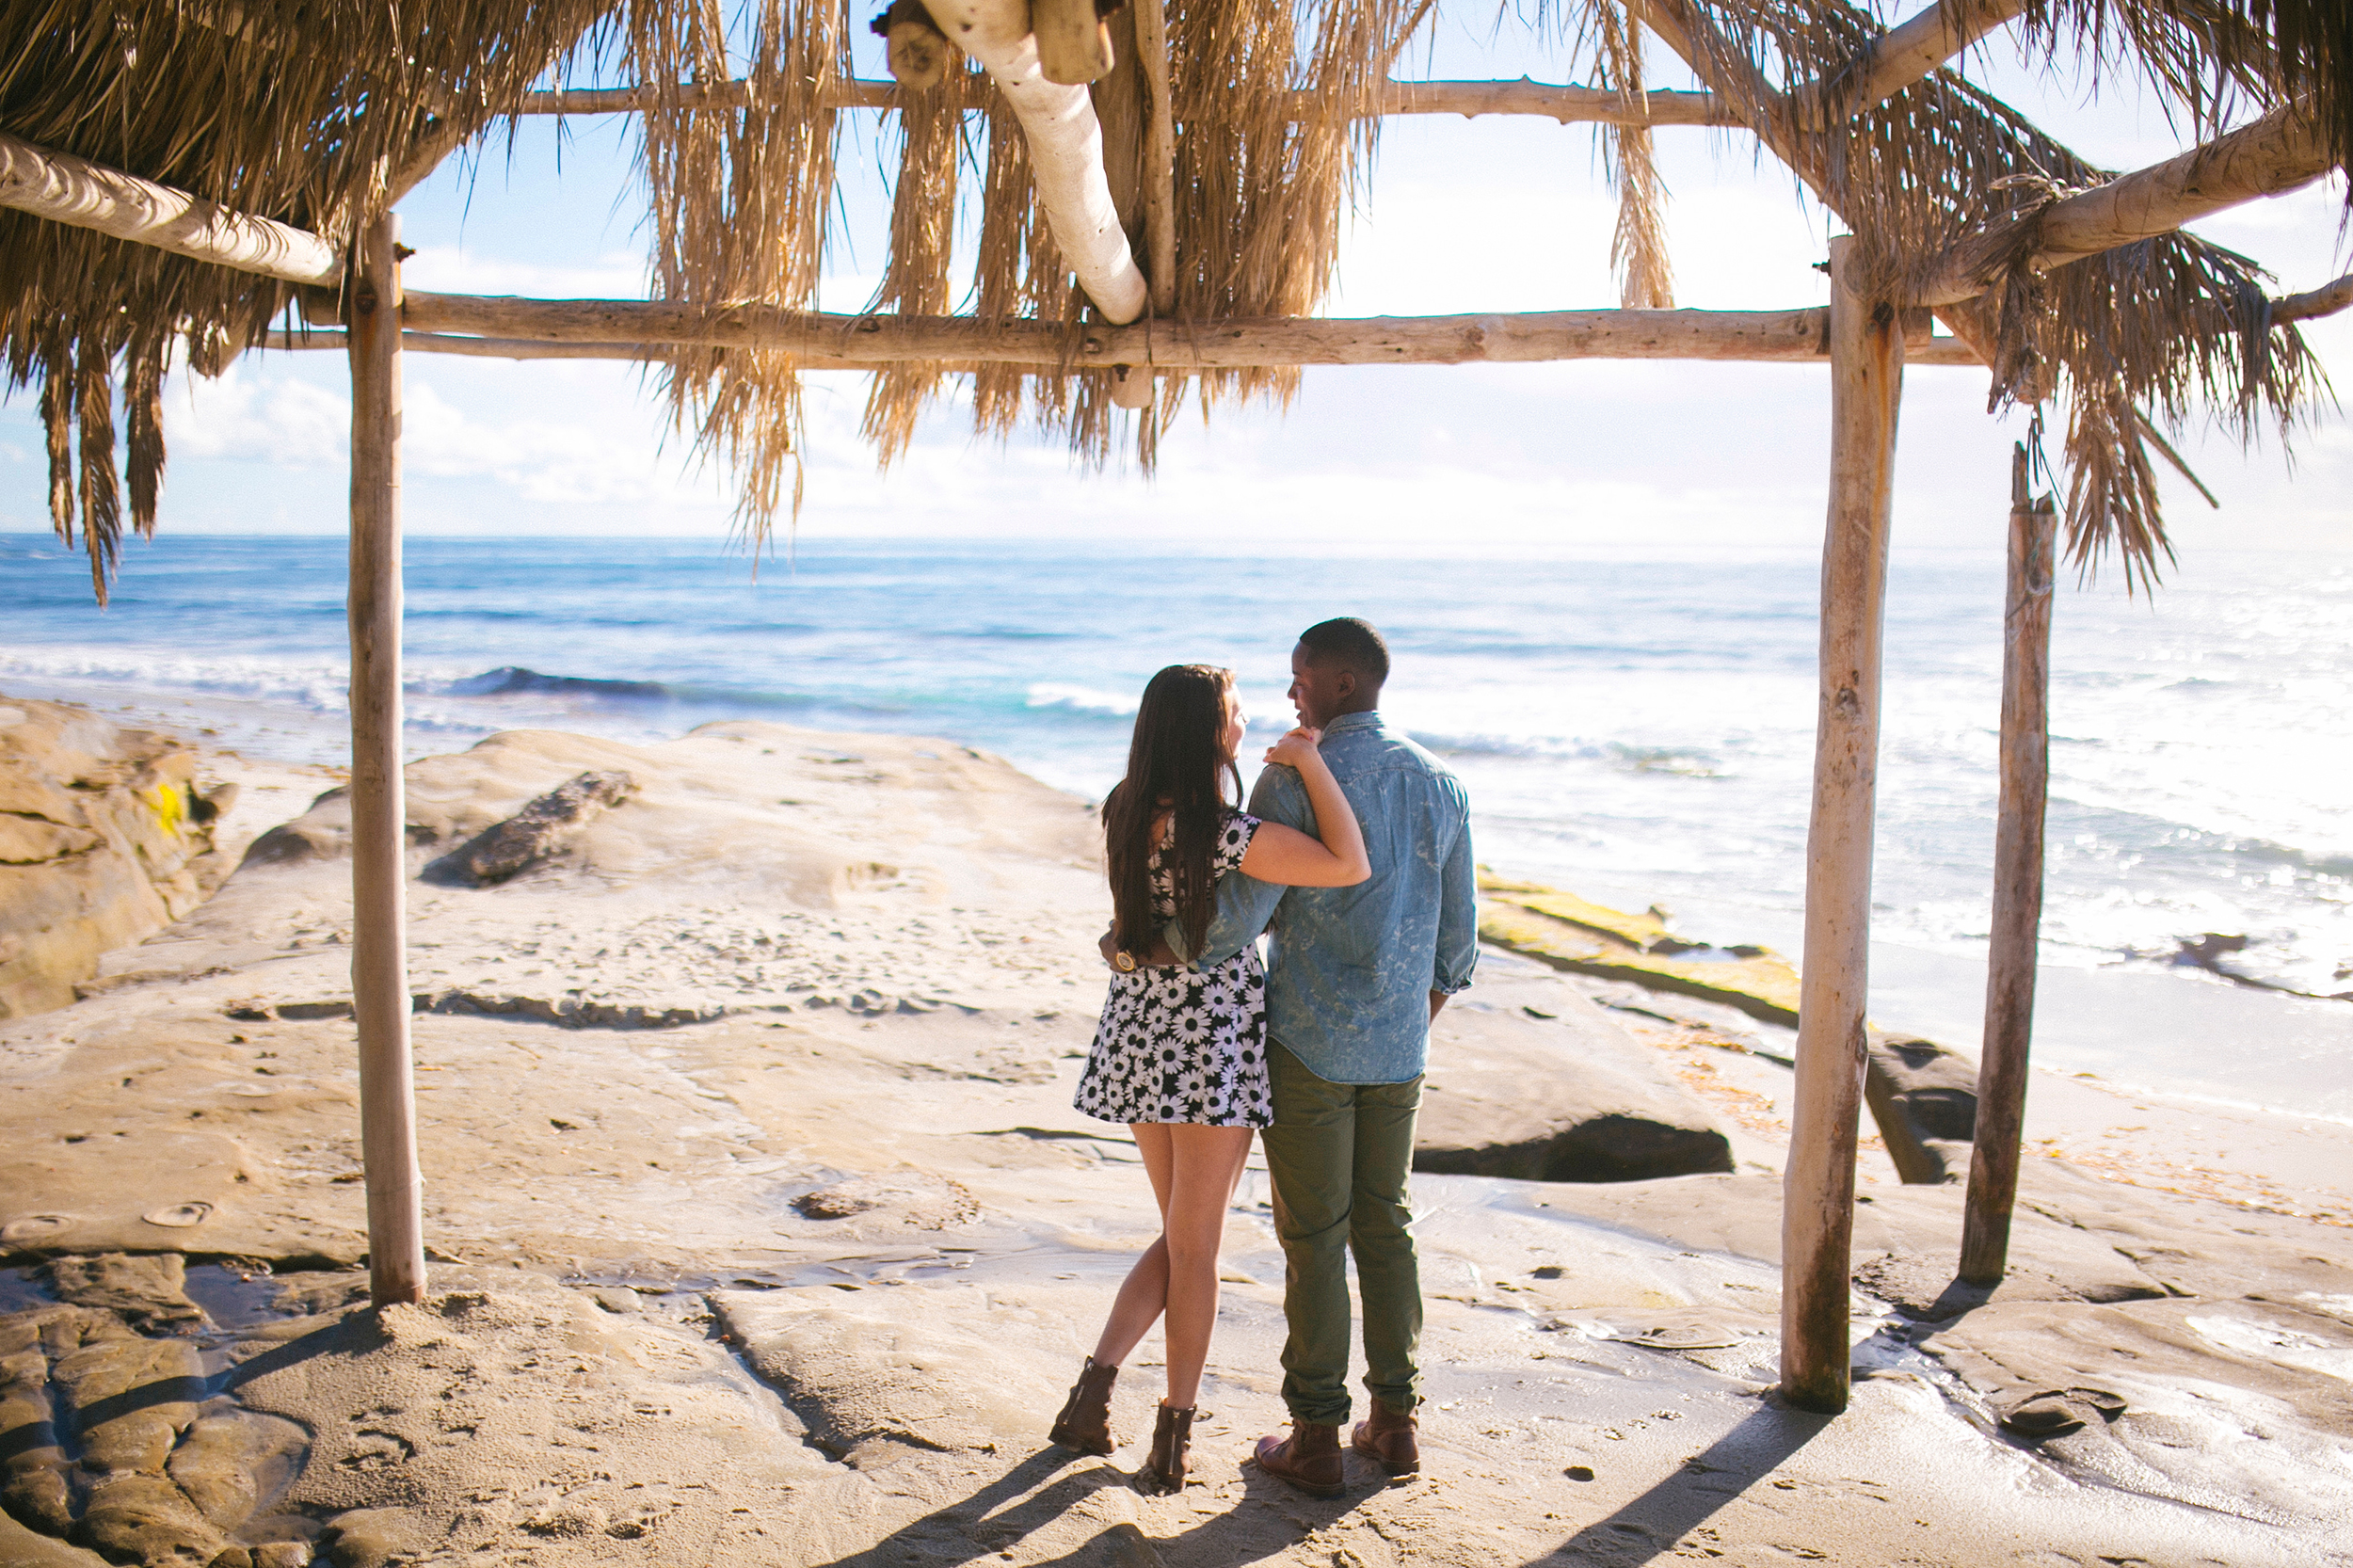 Colby-and-Jess-Adventure-Engagement-Photography-Torrey-Pines-La-Jolla-California38.jpg